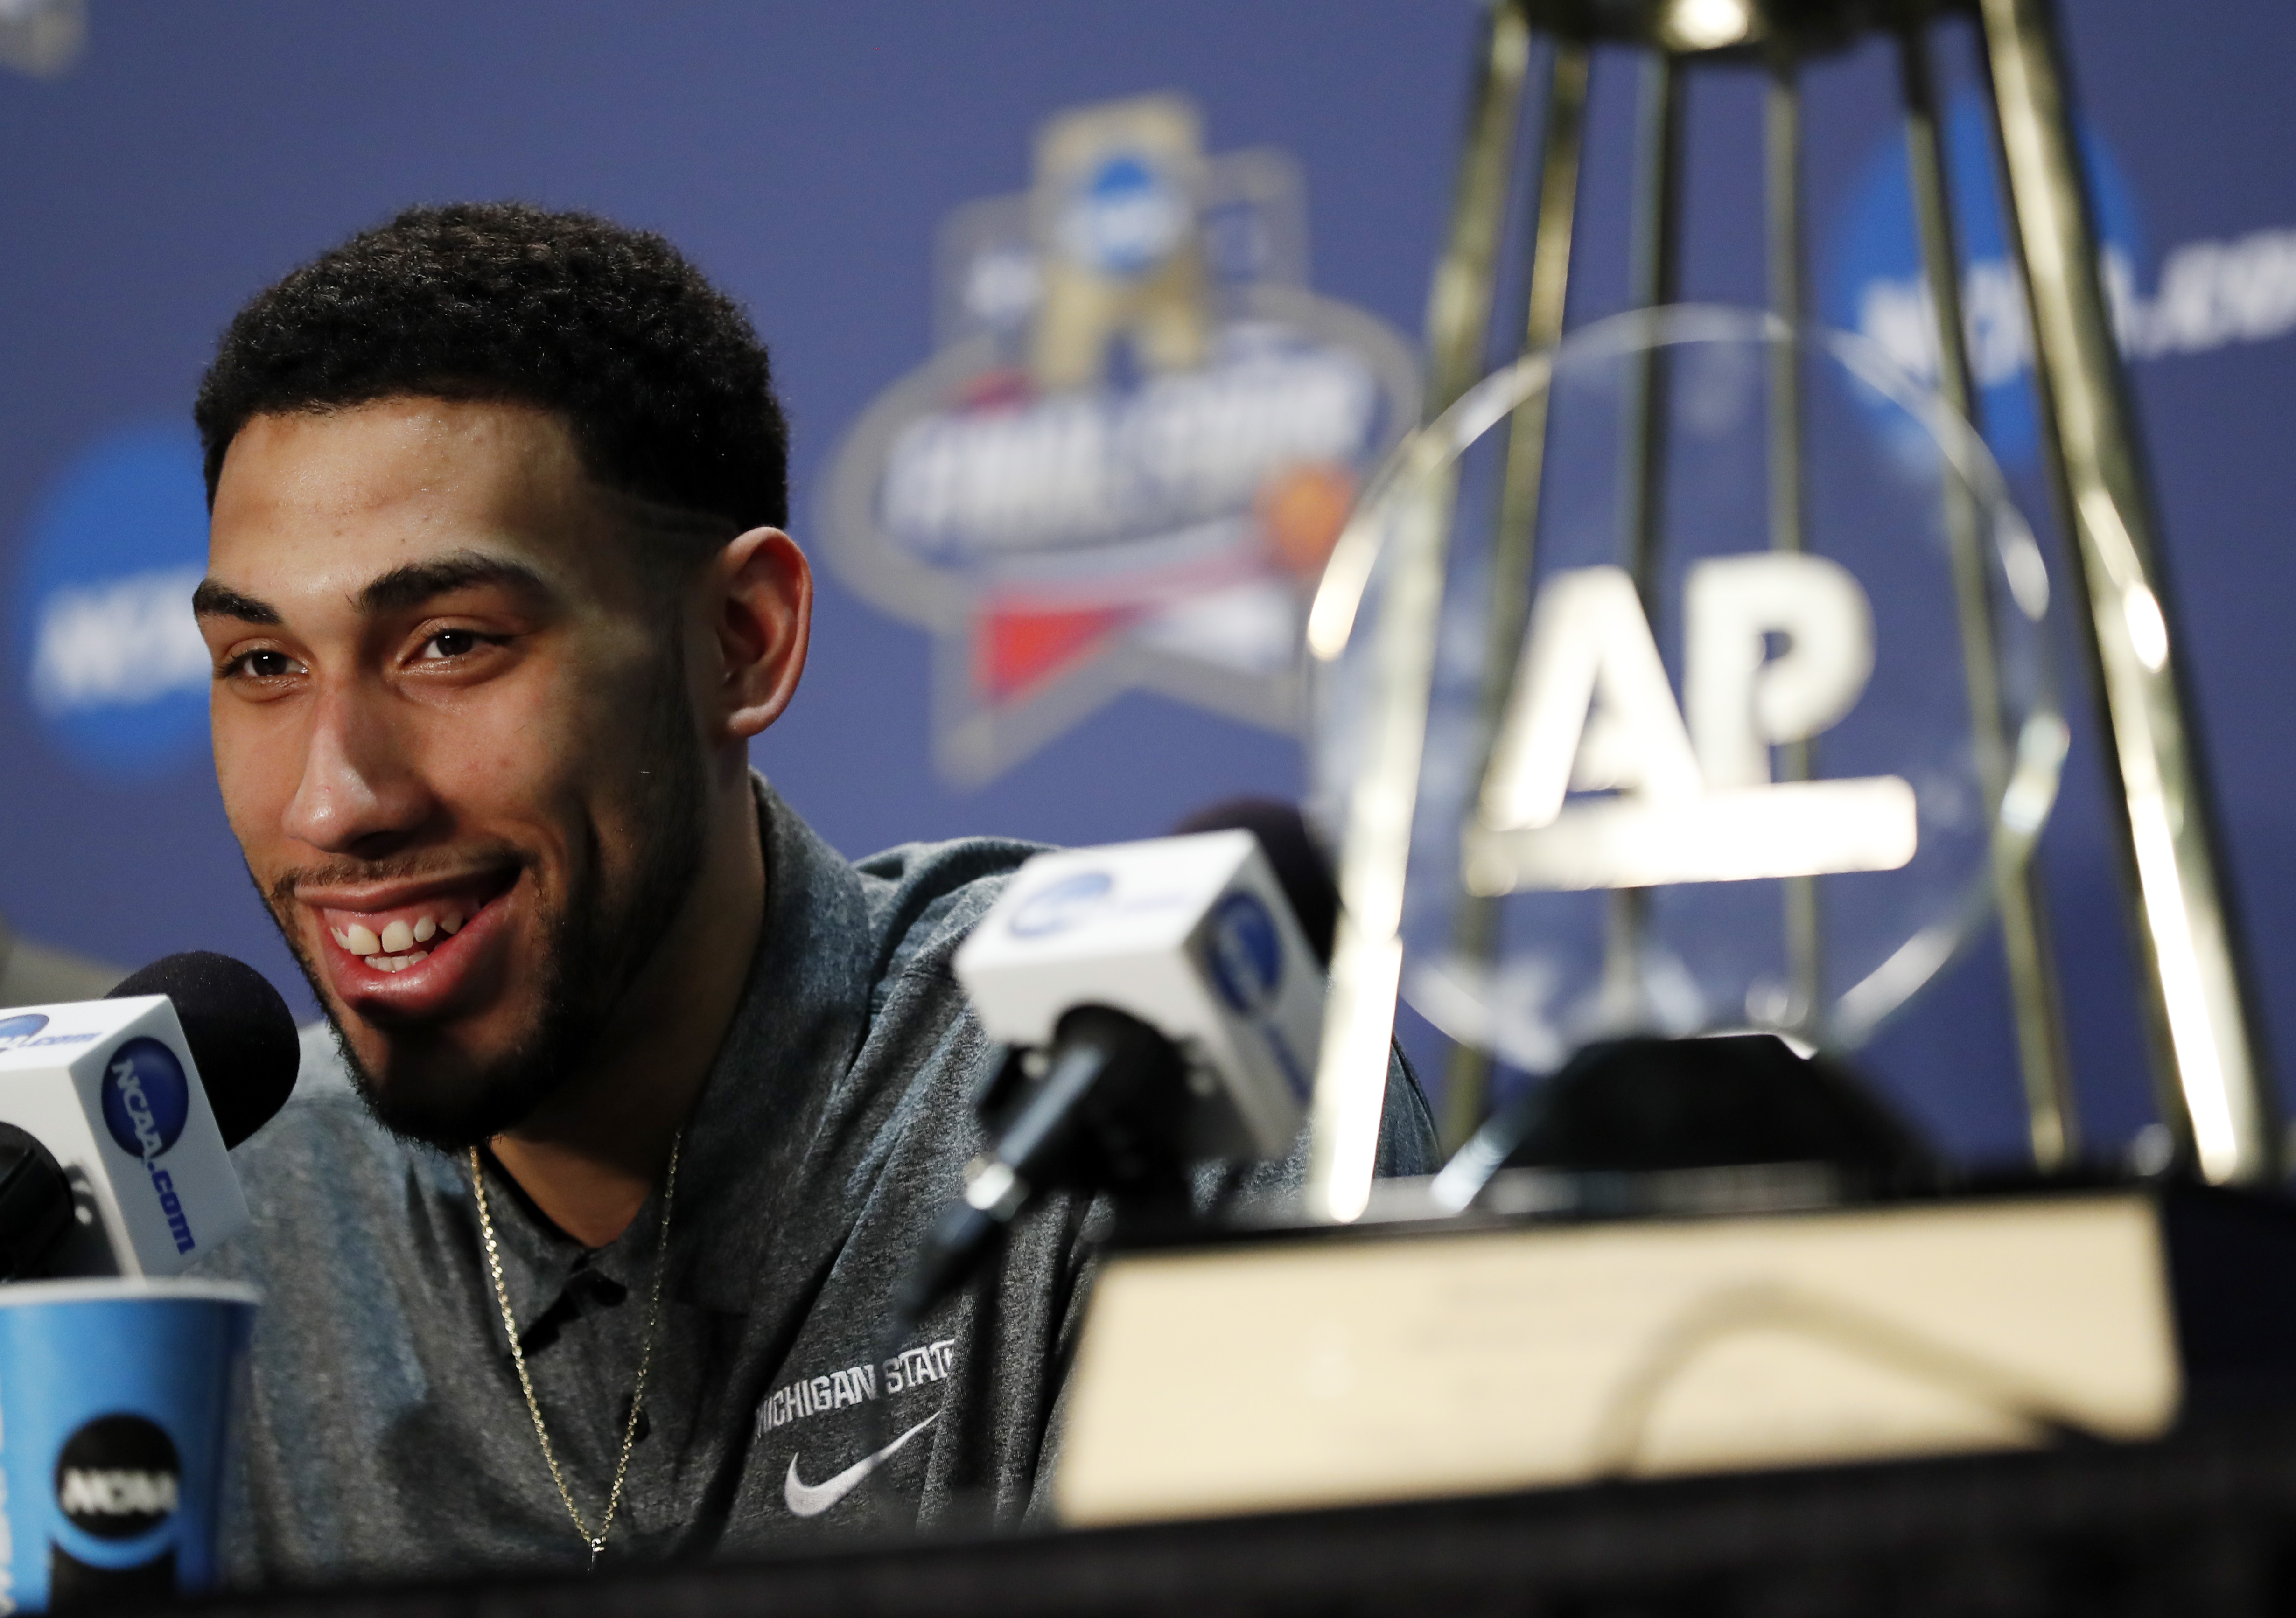 Michigan State's Denzel Valentine answers a questions with his Associated Press Player of the Year trophy at a news conference at the NCAA Final Four college basketball tournament Thursday, March 31, 2016, in Houston. (AP Photo/David J. Phillip)